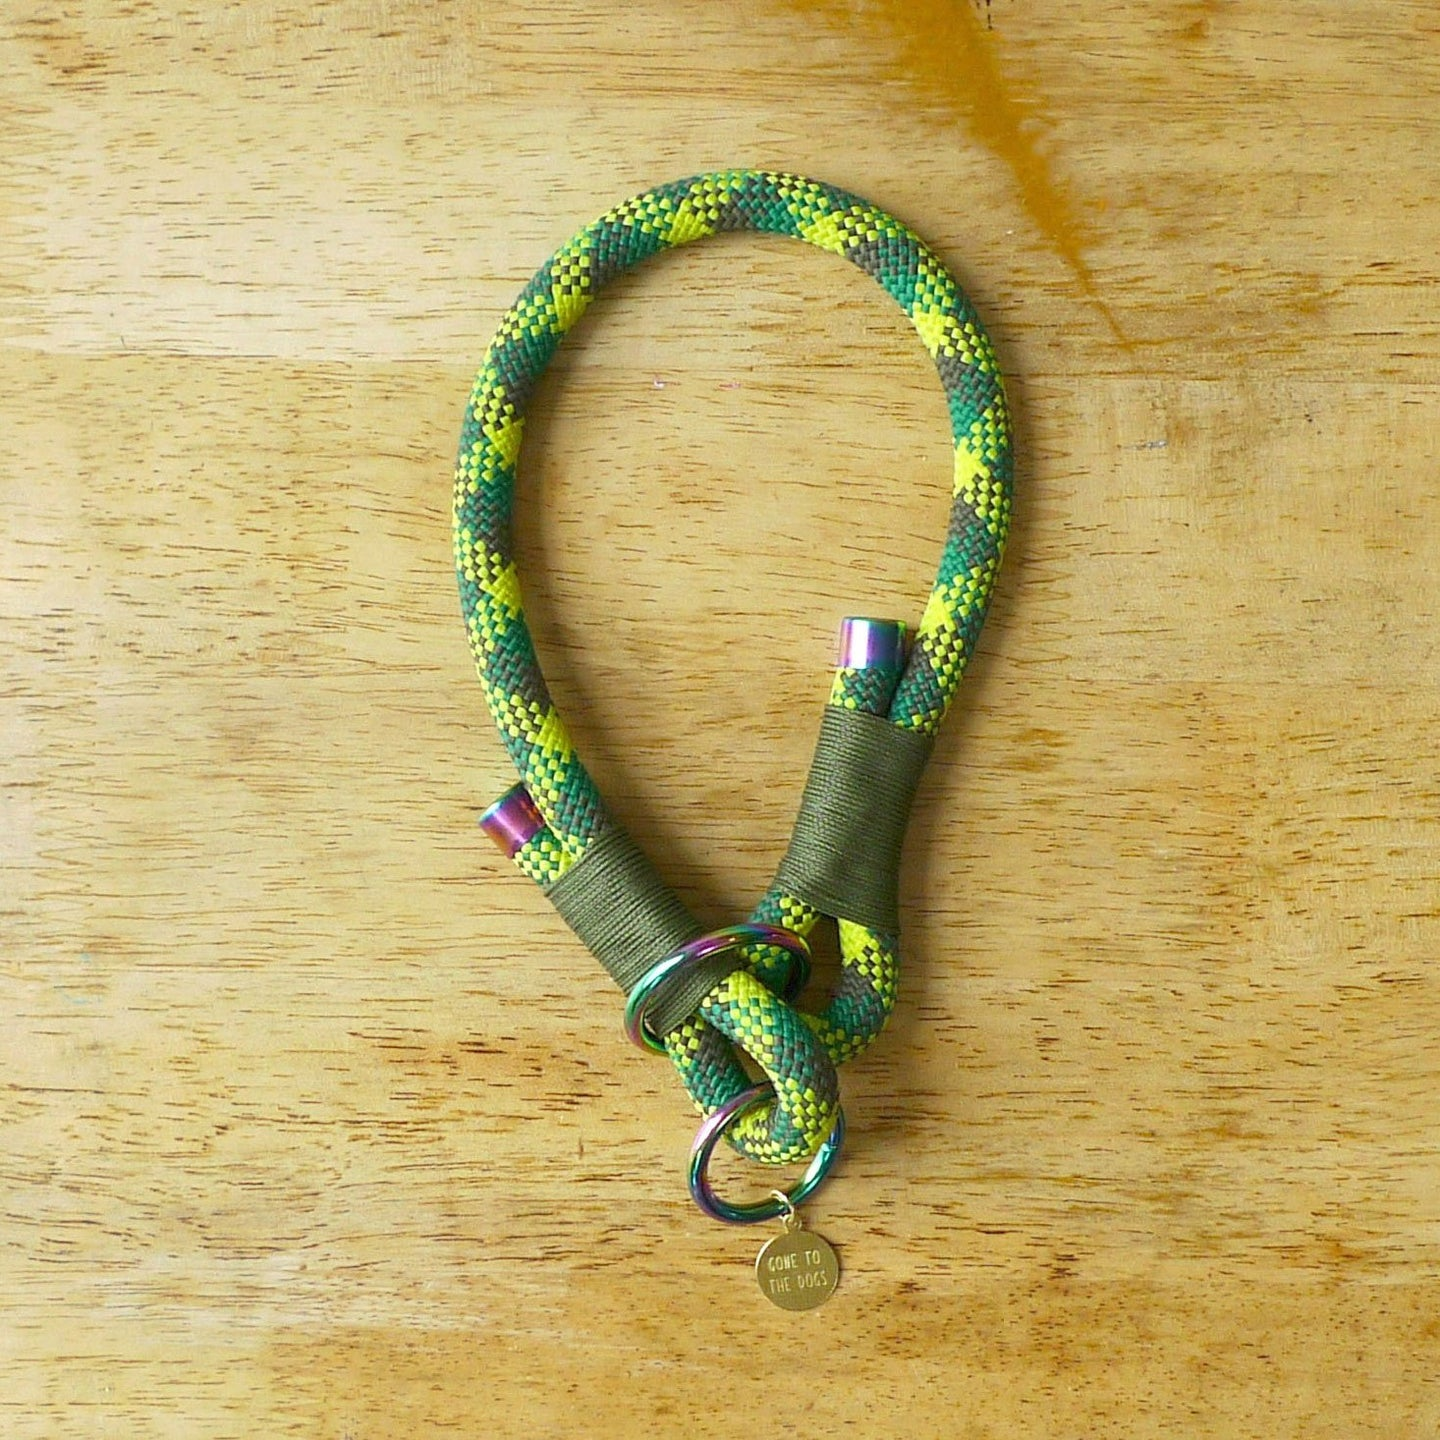 Green Rope Slip Collar for Dogs